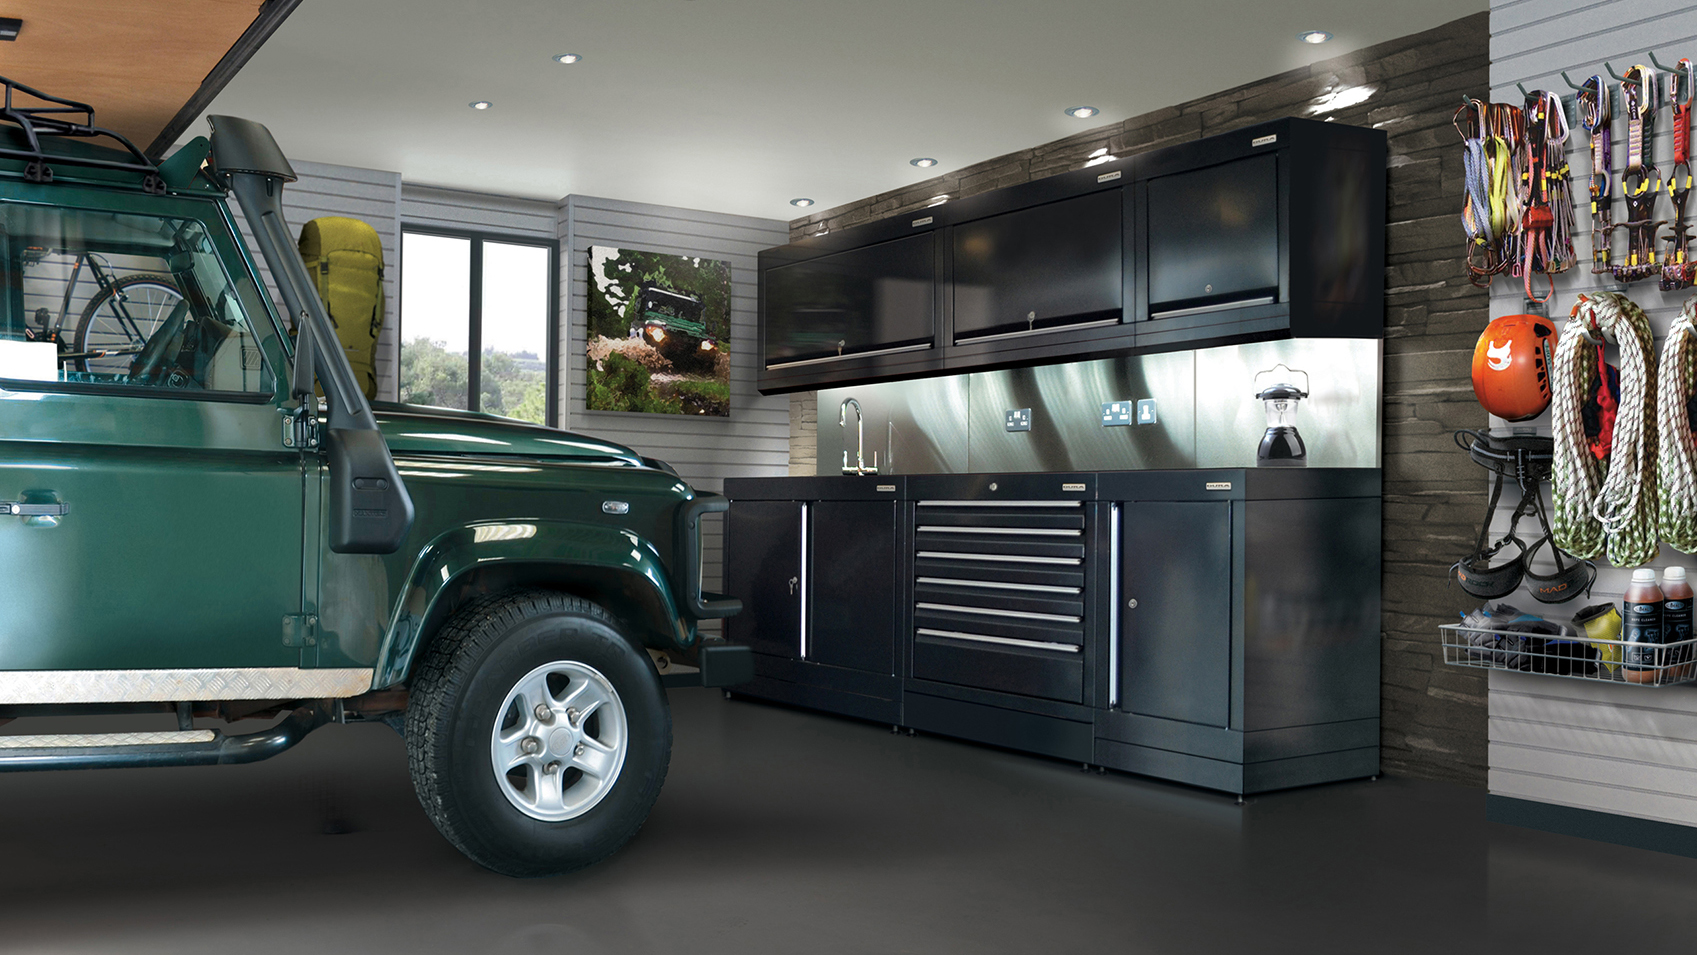 12 Garage Storage Ideas Make It Useful For More Than Just Parking The Car Real Homes